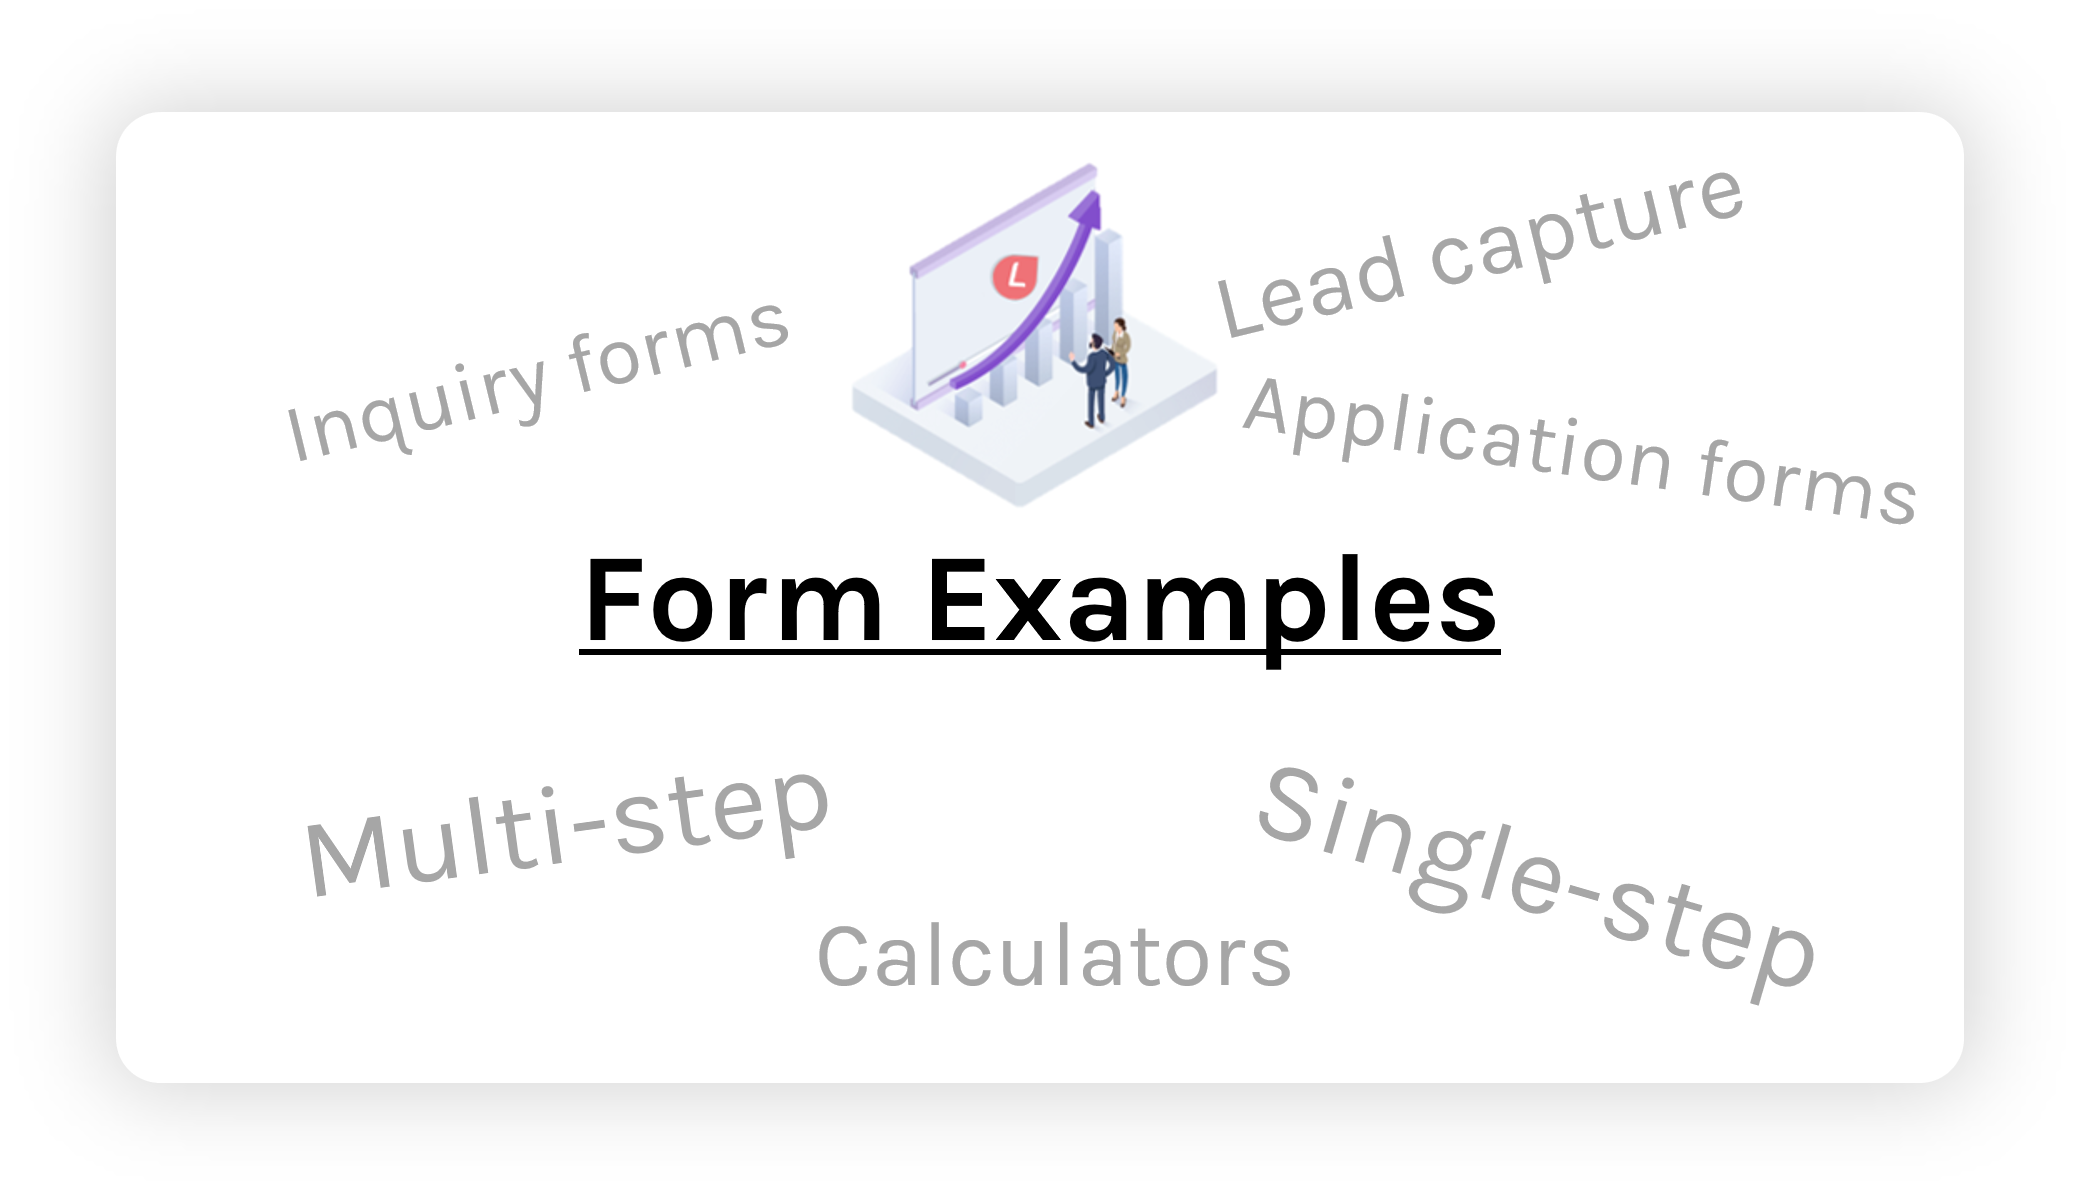 Form examples for data capture and lead collection